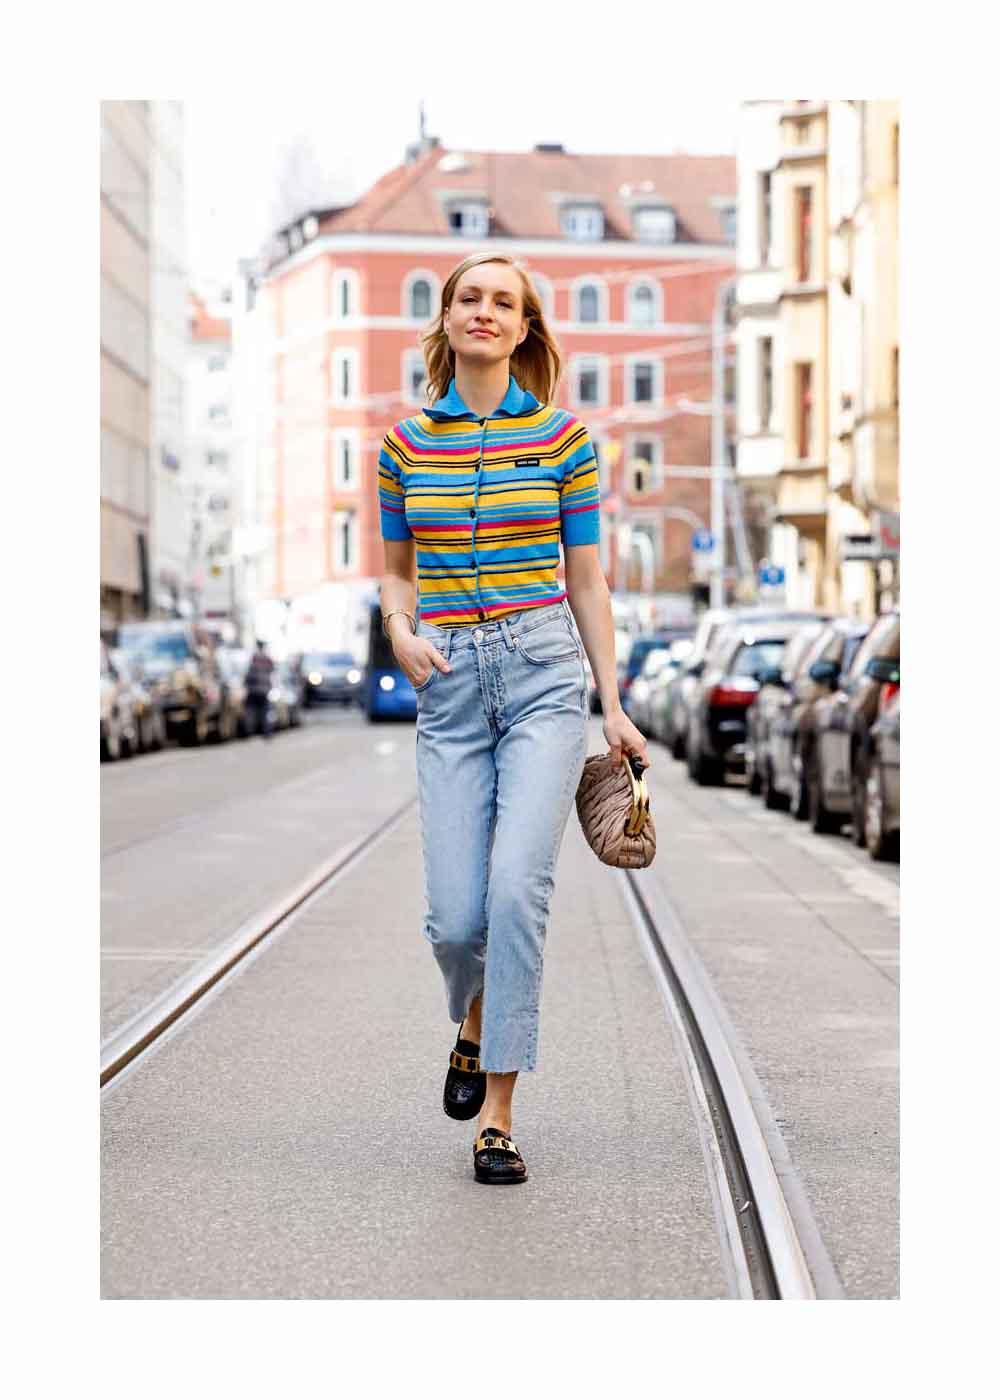 Streetstyle Shooting in München